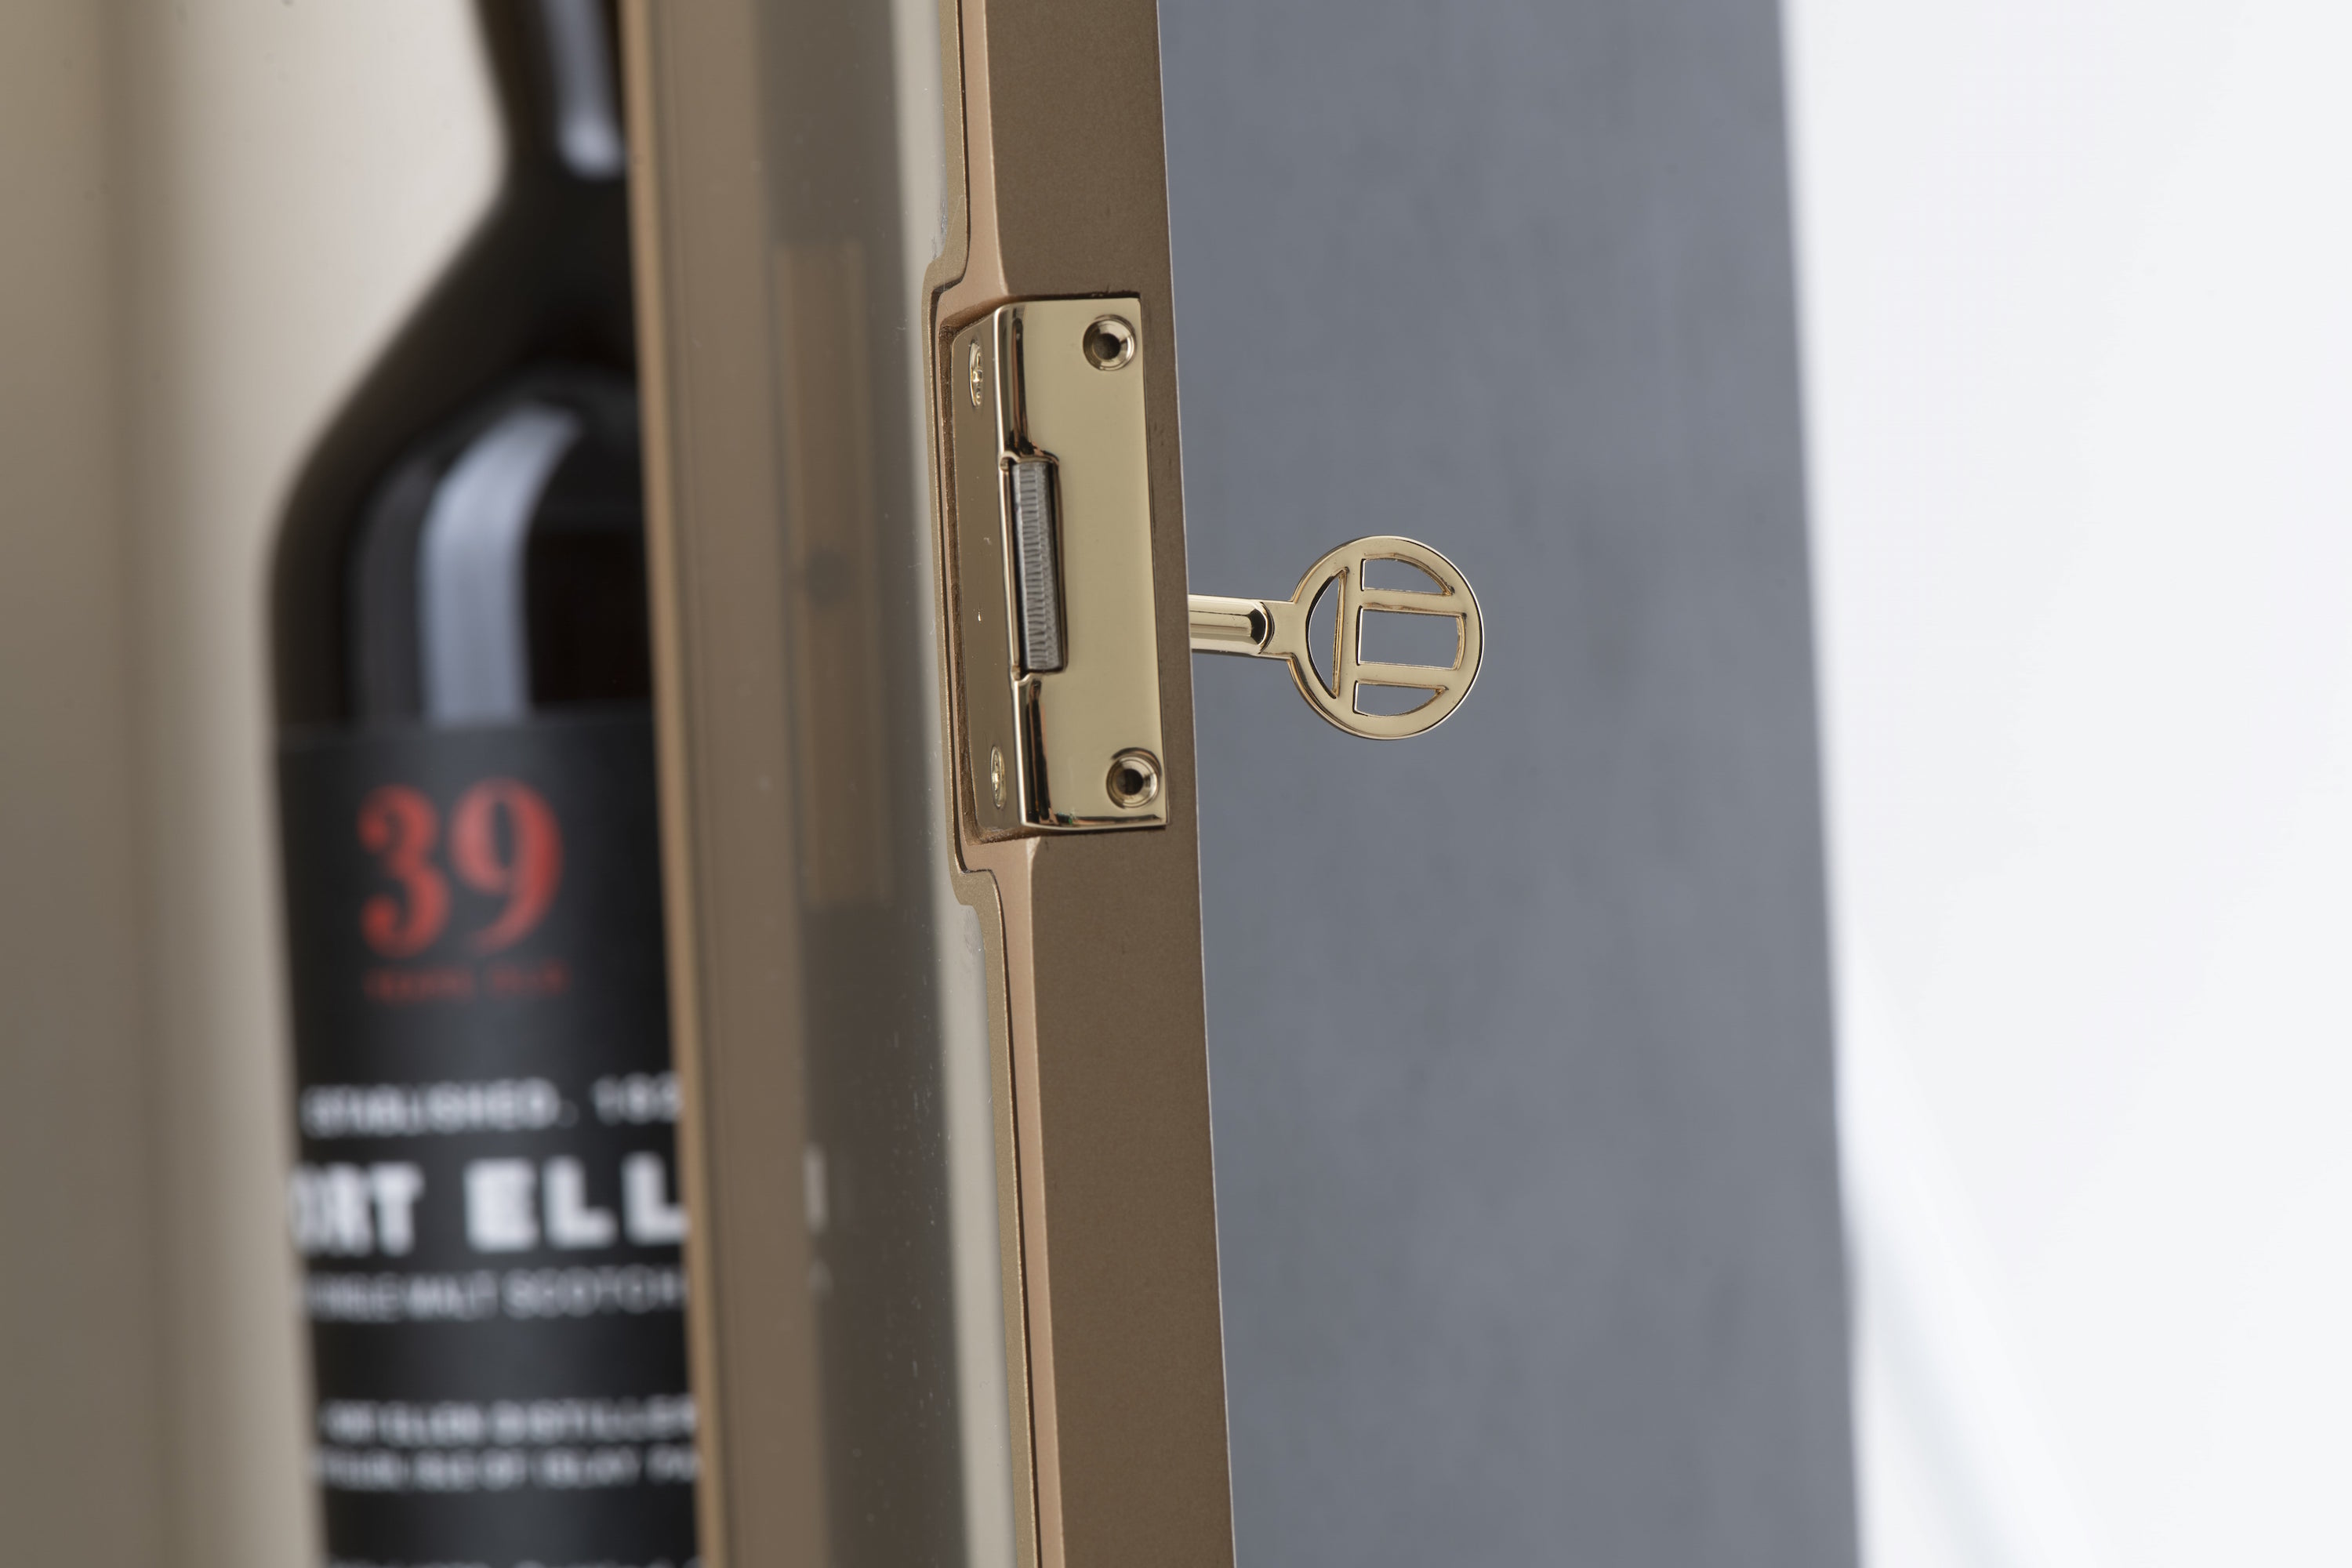 Port Ellen holds the key to a great Scotch whisky.